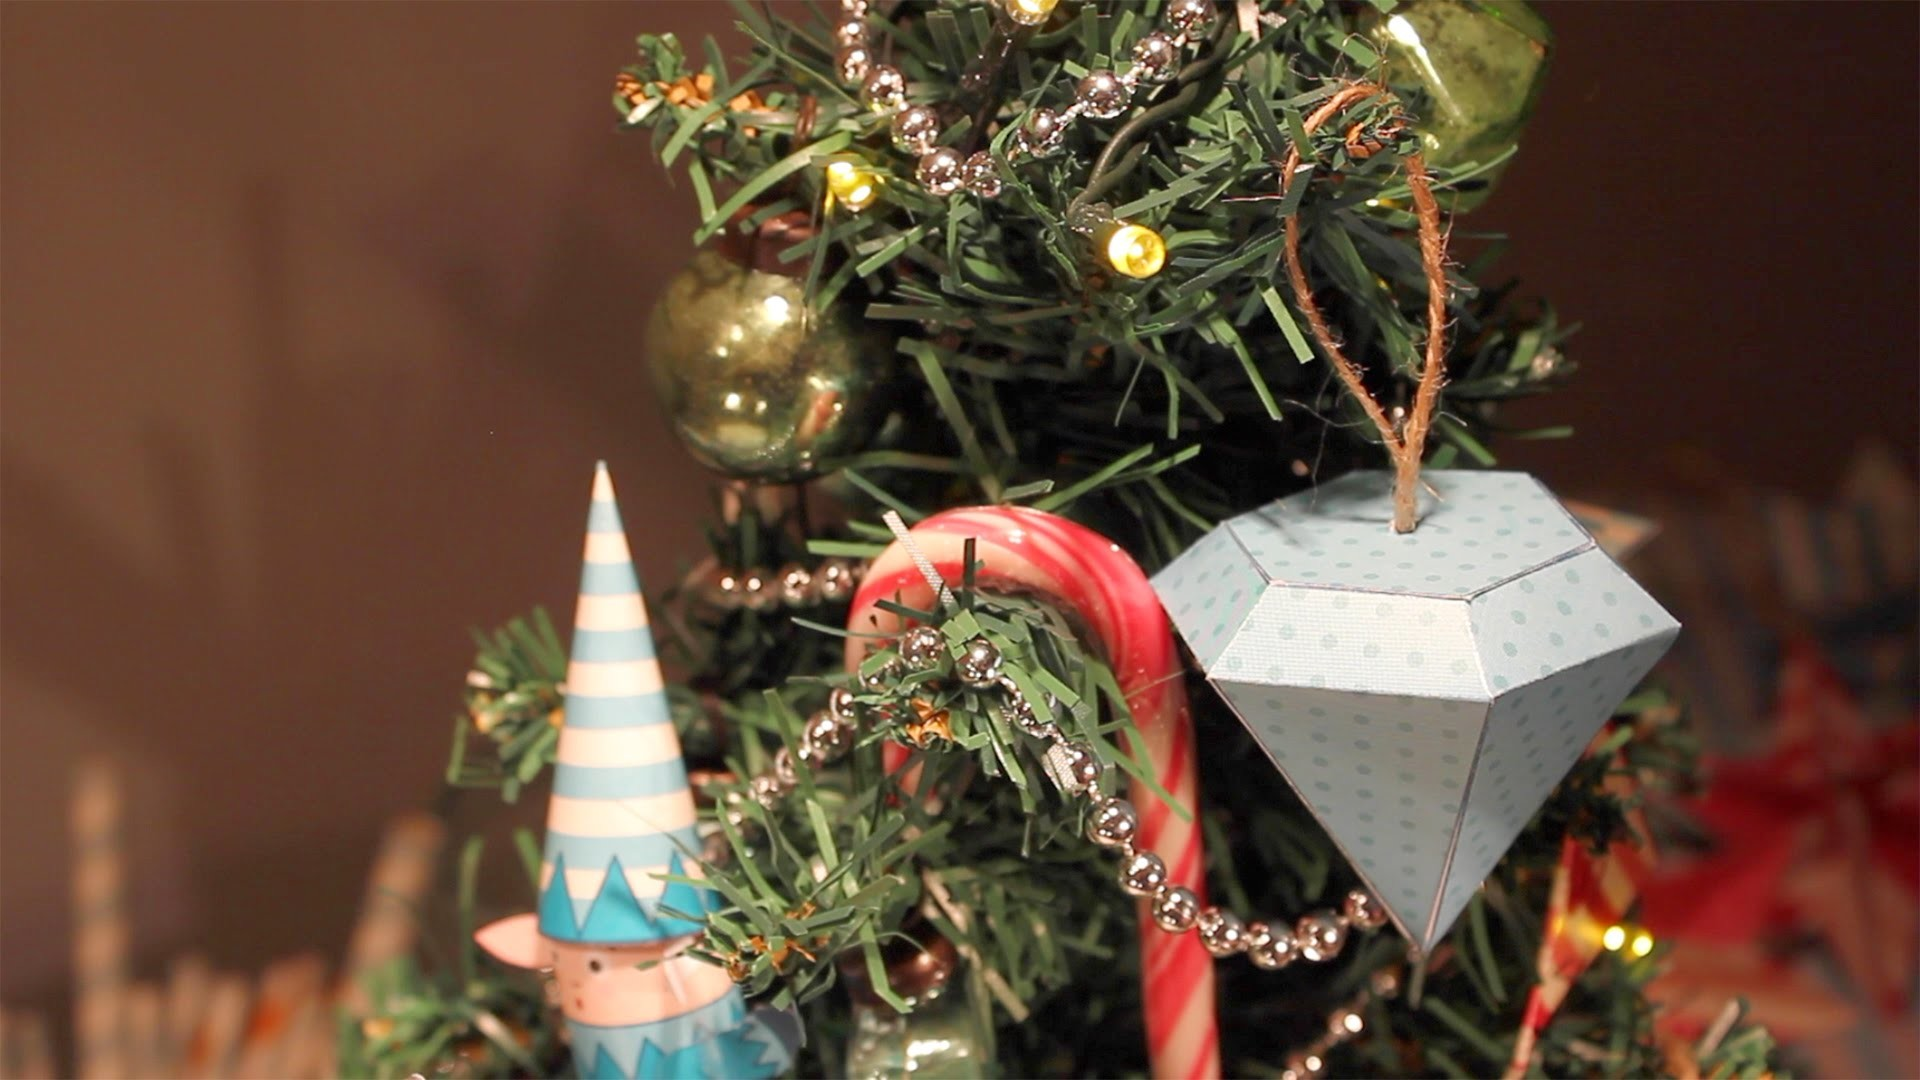 How to make decorations for your Christmas tree - papercraft activity